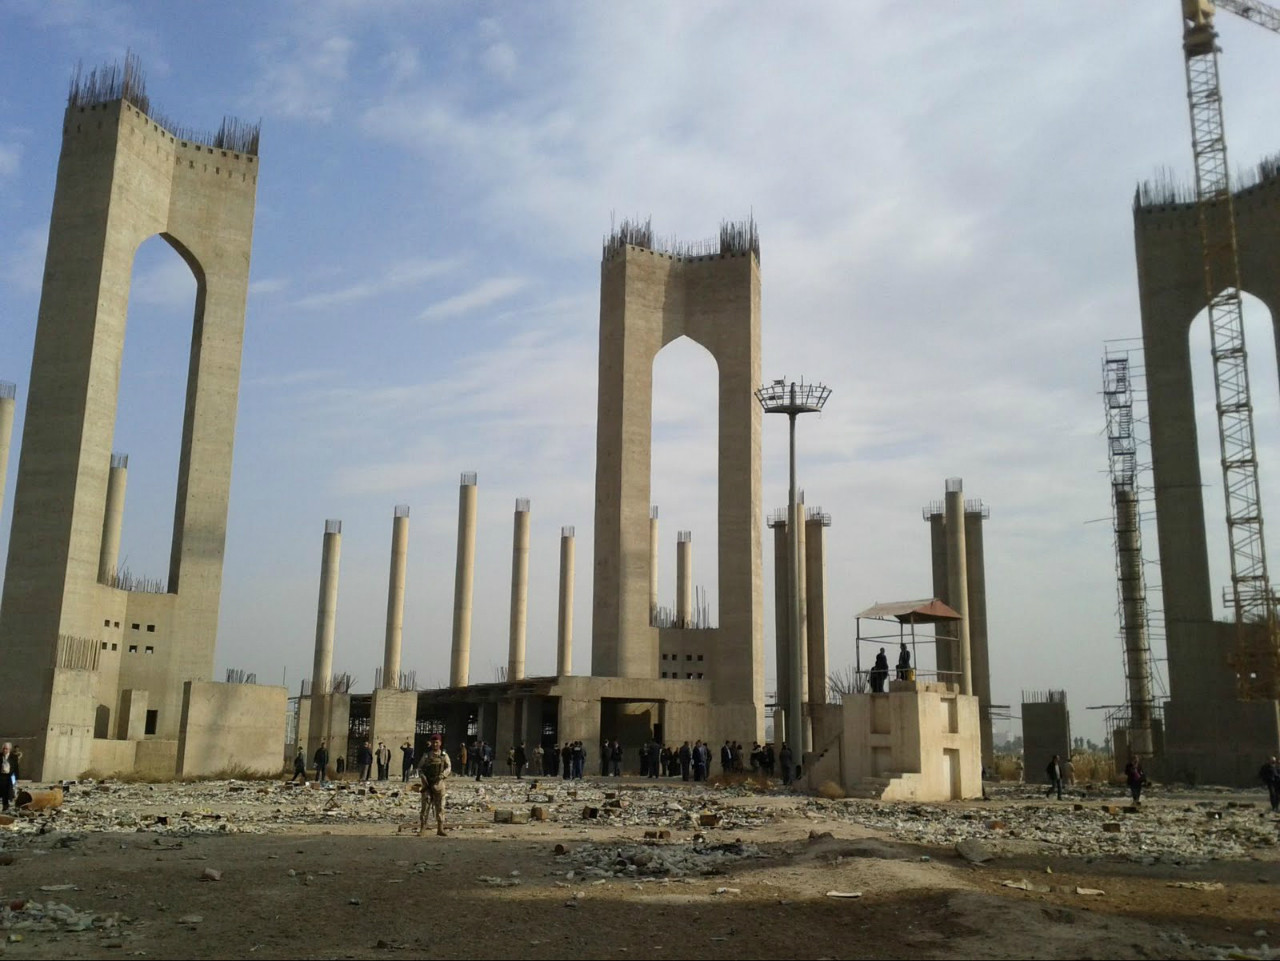 Existing site for Iraqi parliament complex in Baghdad. Image © Assemblage